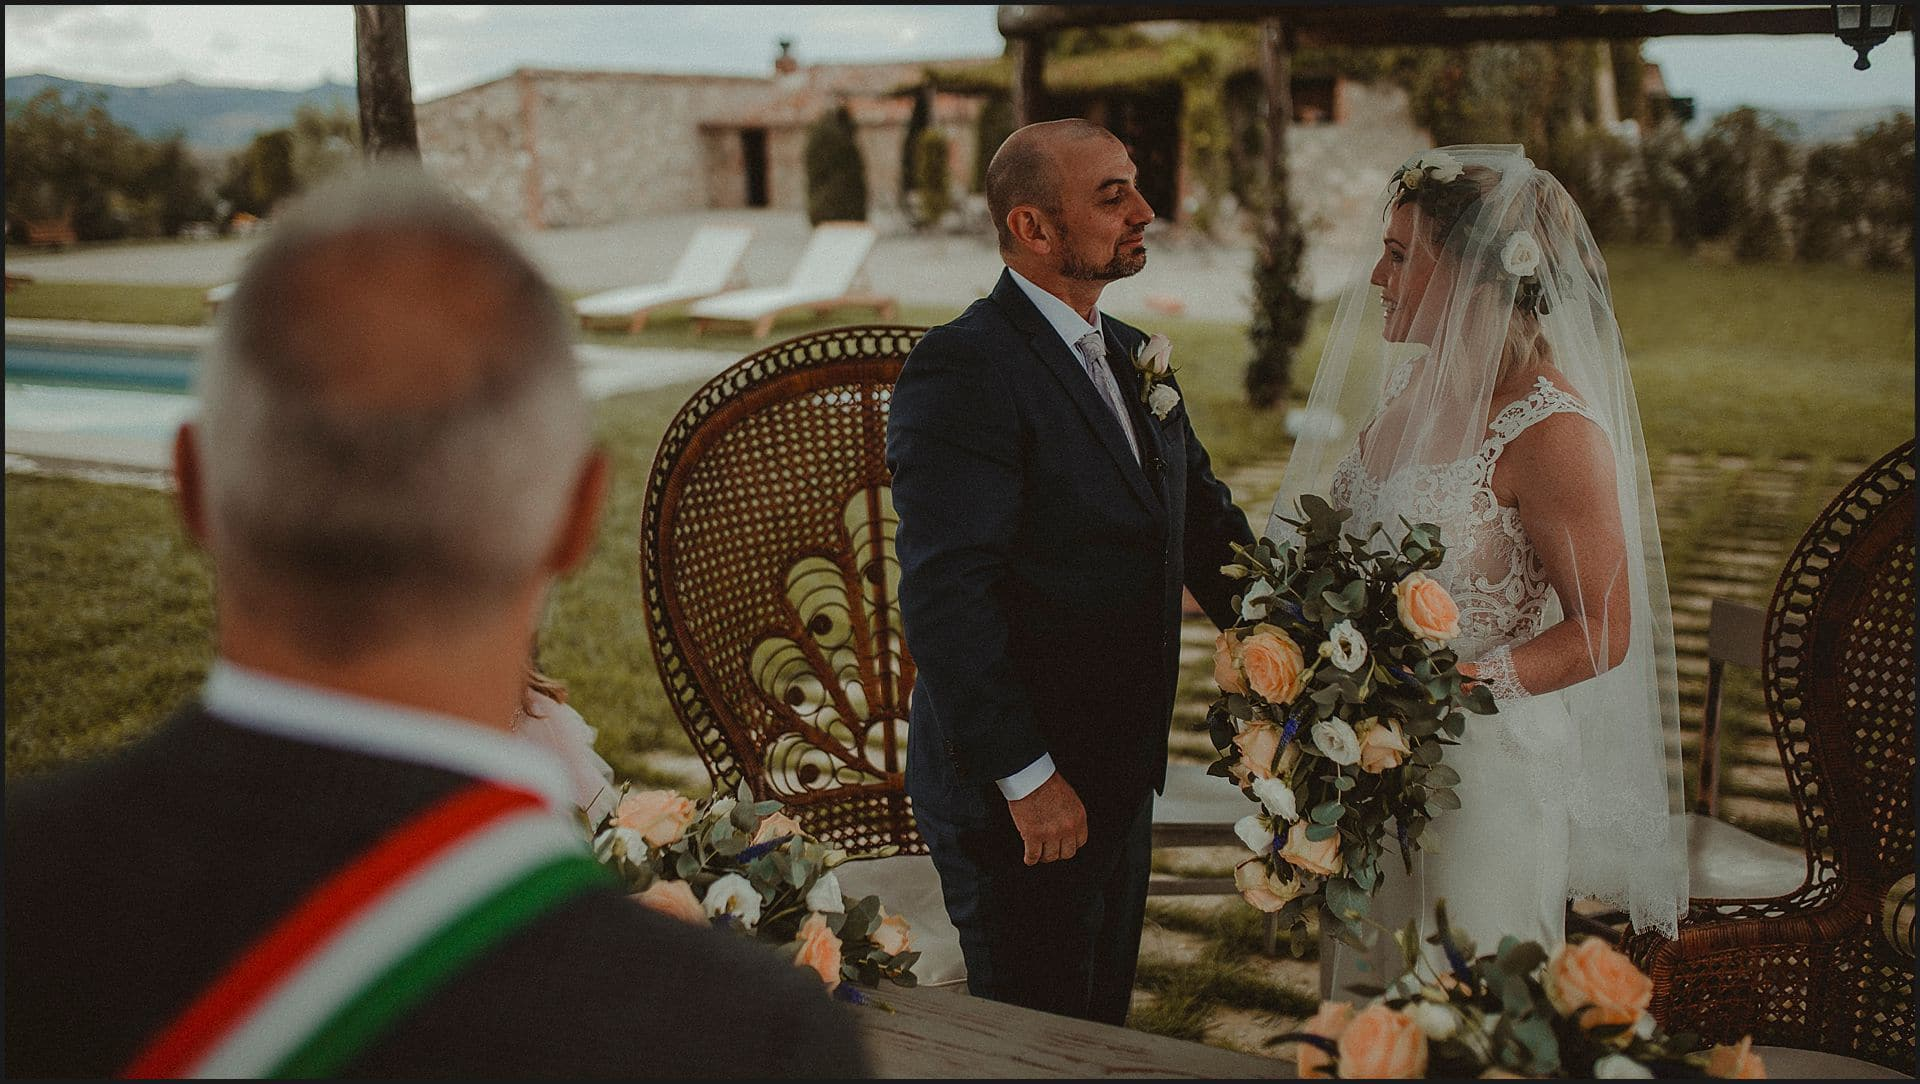 intimate wedding, civil ceremony, australian couple, locanda in tuscany, elopement, tuscany, val d'orcia, siena